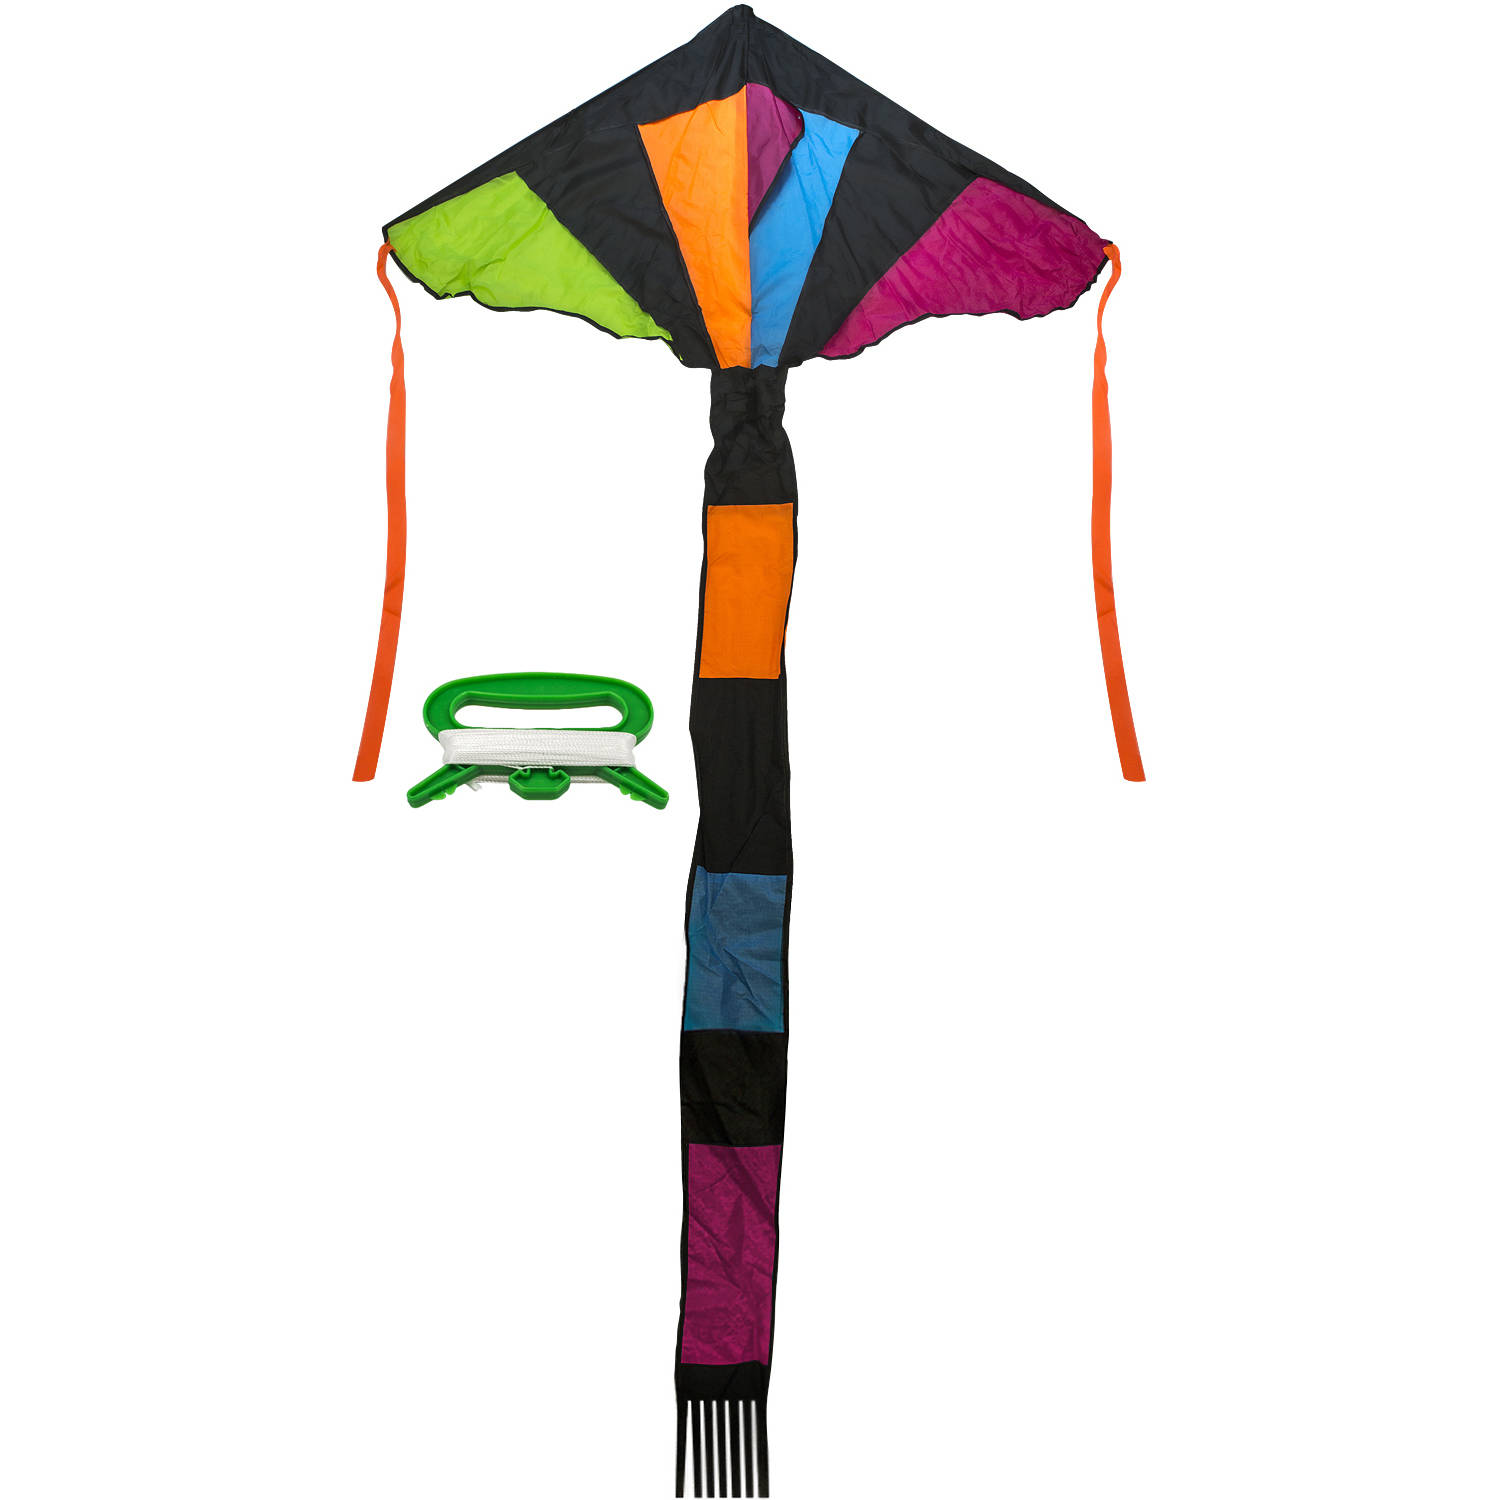 Matney Rainbow Delta Kite, Colorful and Fun Kite, Great for All Summer Activities, 46""